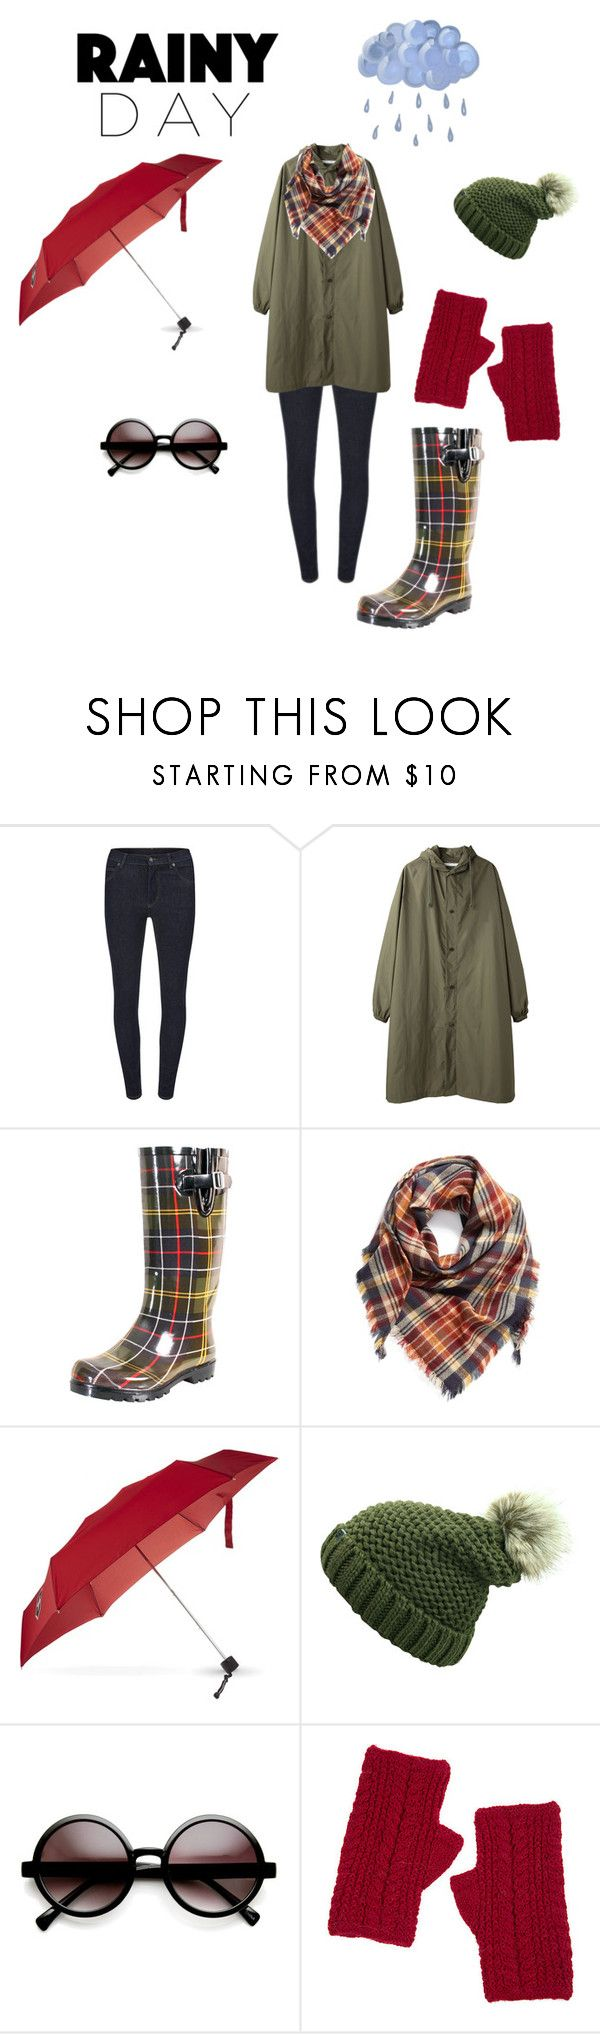 """""""Rain Day"""" by deb-c ❤ liked on Polyvore featuring Cheap Monday, Apiece Apart, Nomad Footwear, BP., Victorinox Swiss Army, ZeroUV and Overland Sheepskin Co."""